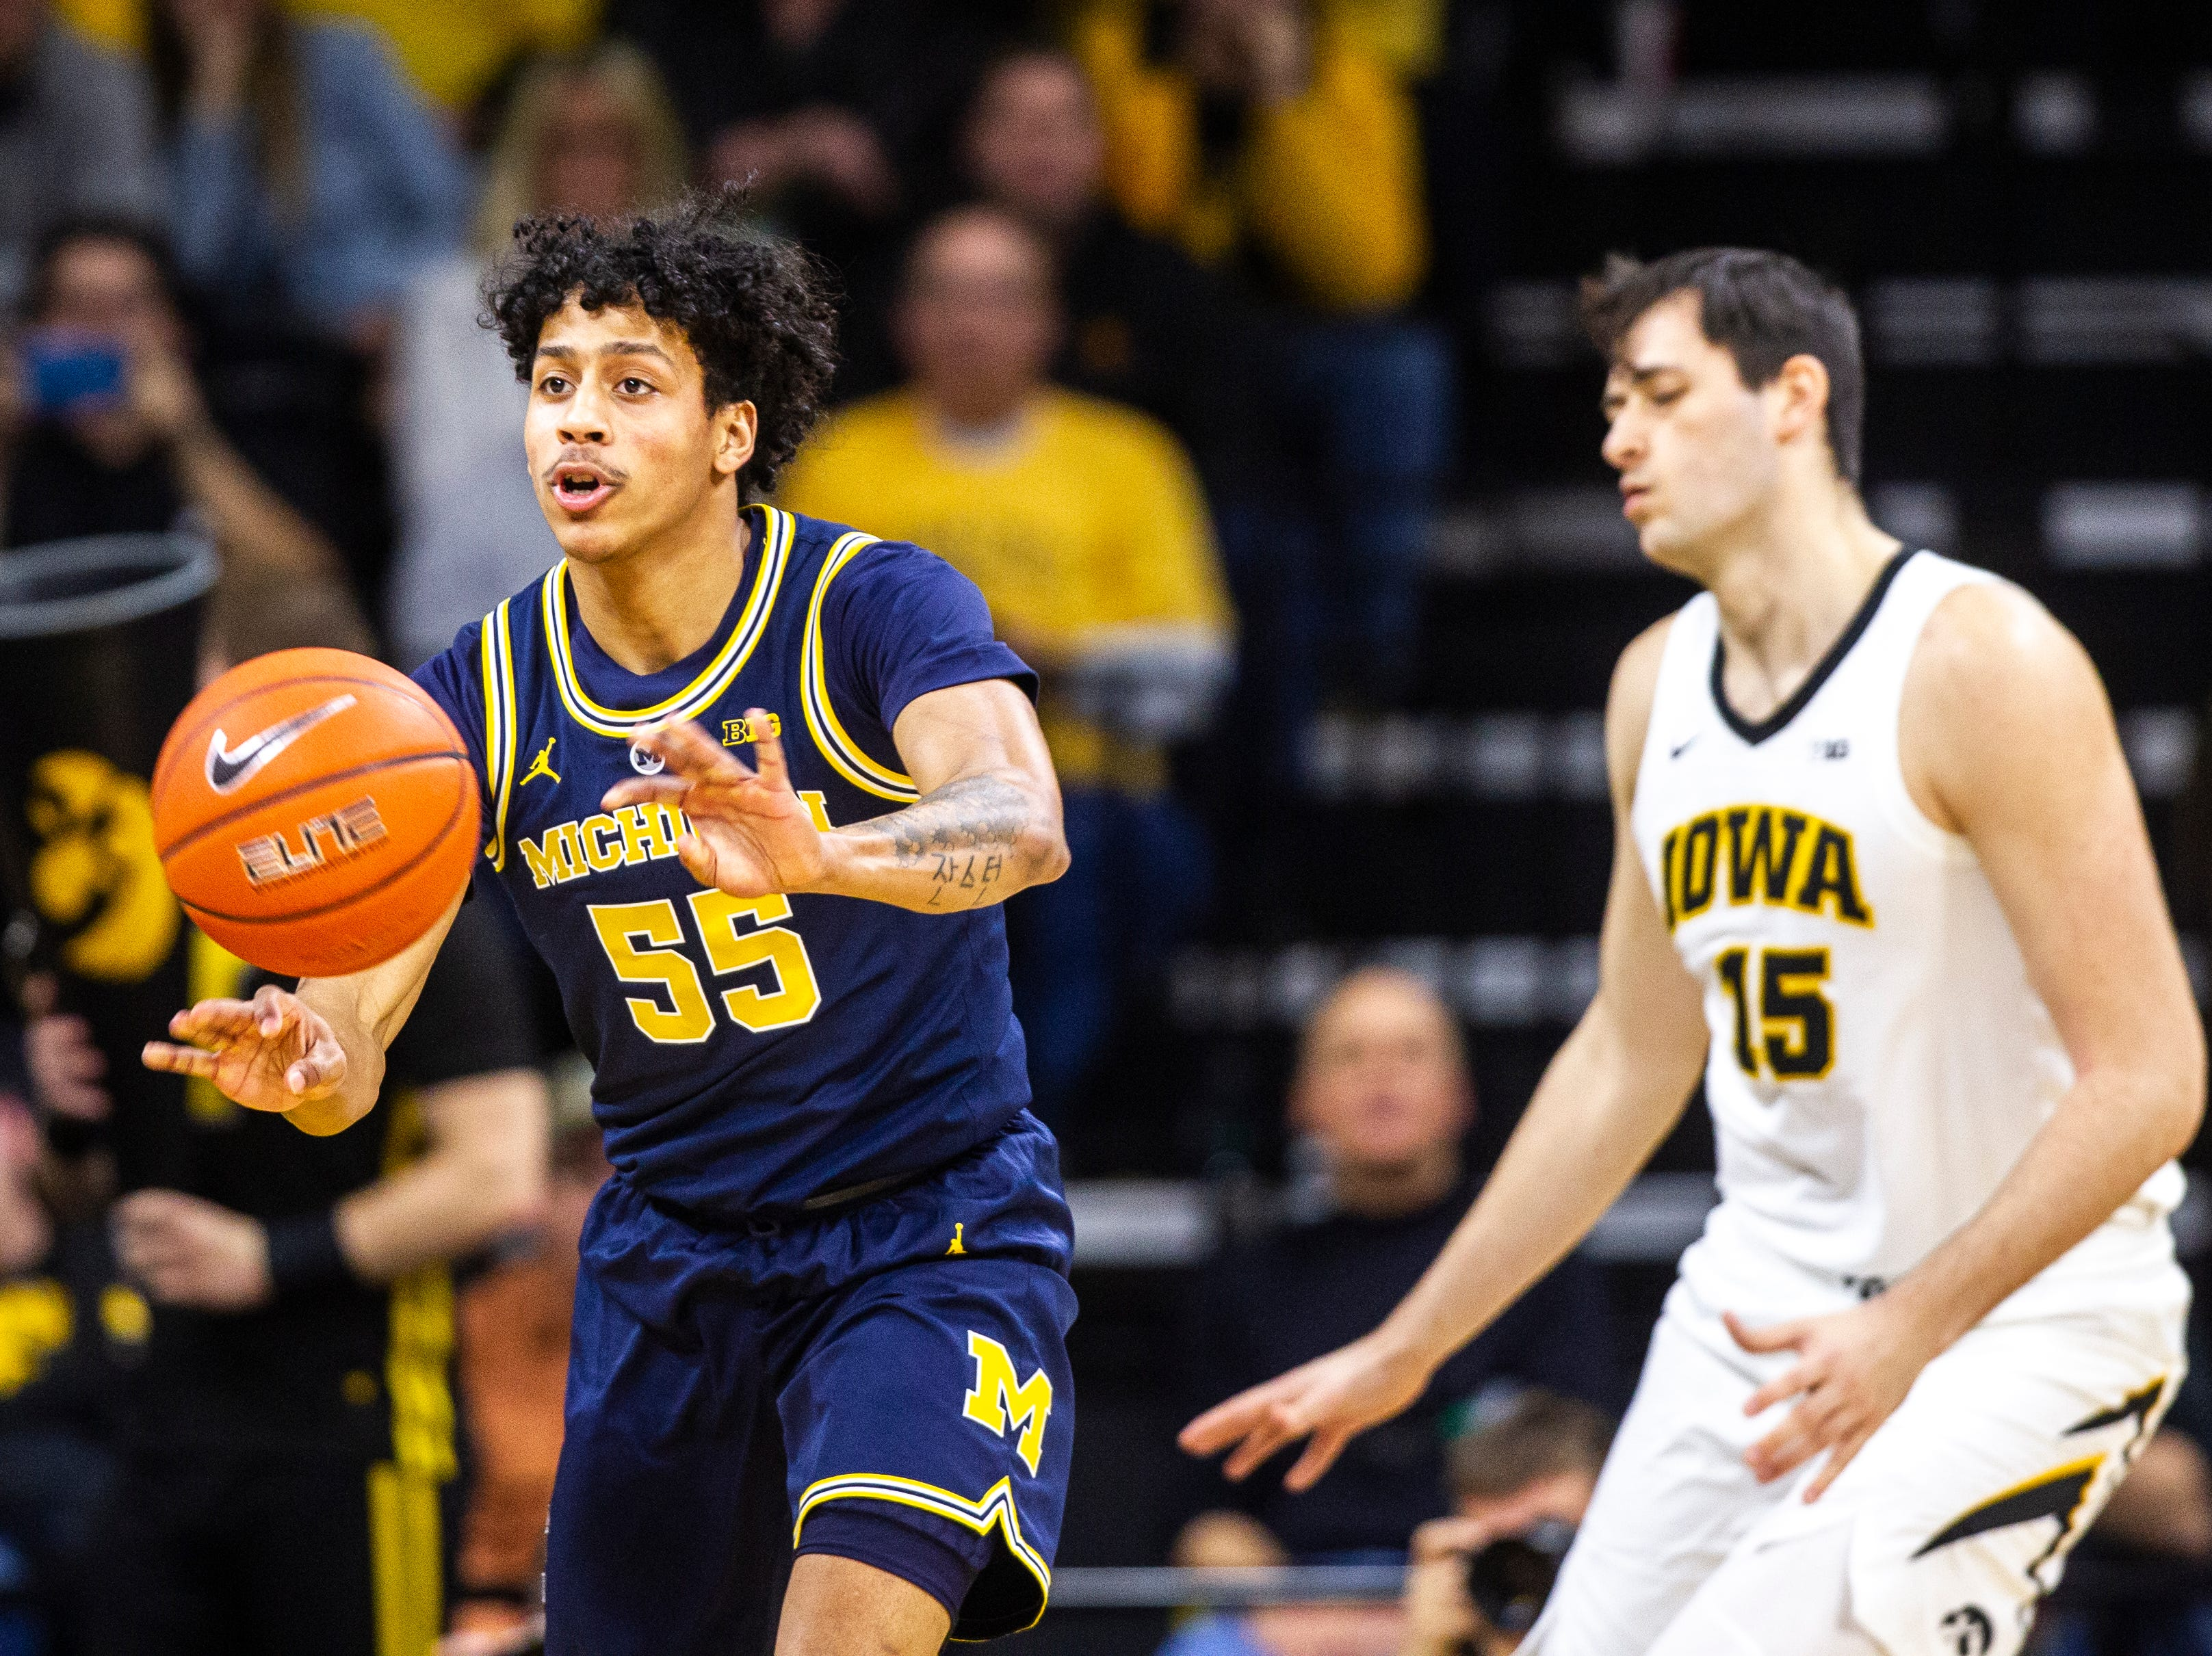 Michigan guard Eli Brooks (55) passes while Iowa forward Ryan Kriener (15) defends during a NCAA Big Ten Conference men's basketball game on Friday, Feb. 1, 2019, at Carver-Hawkeye Arena in Iowa City, Iowa.